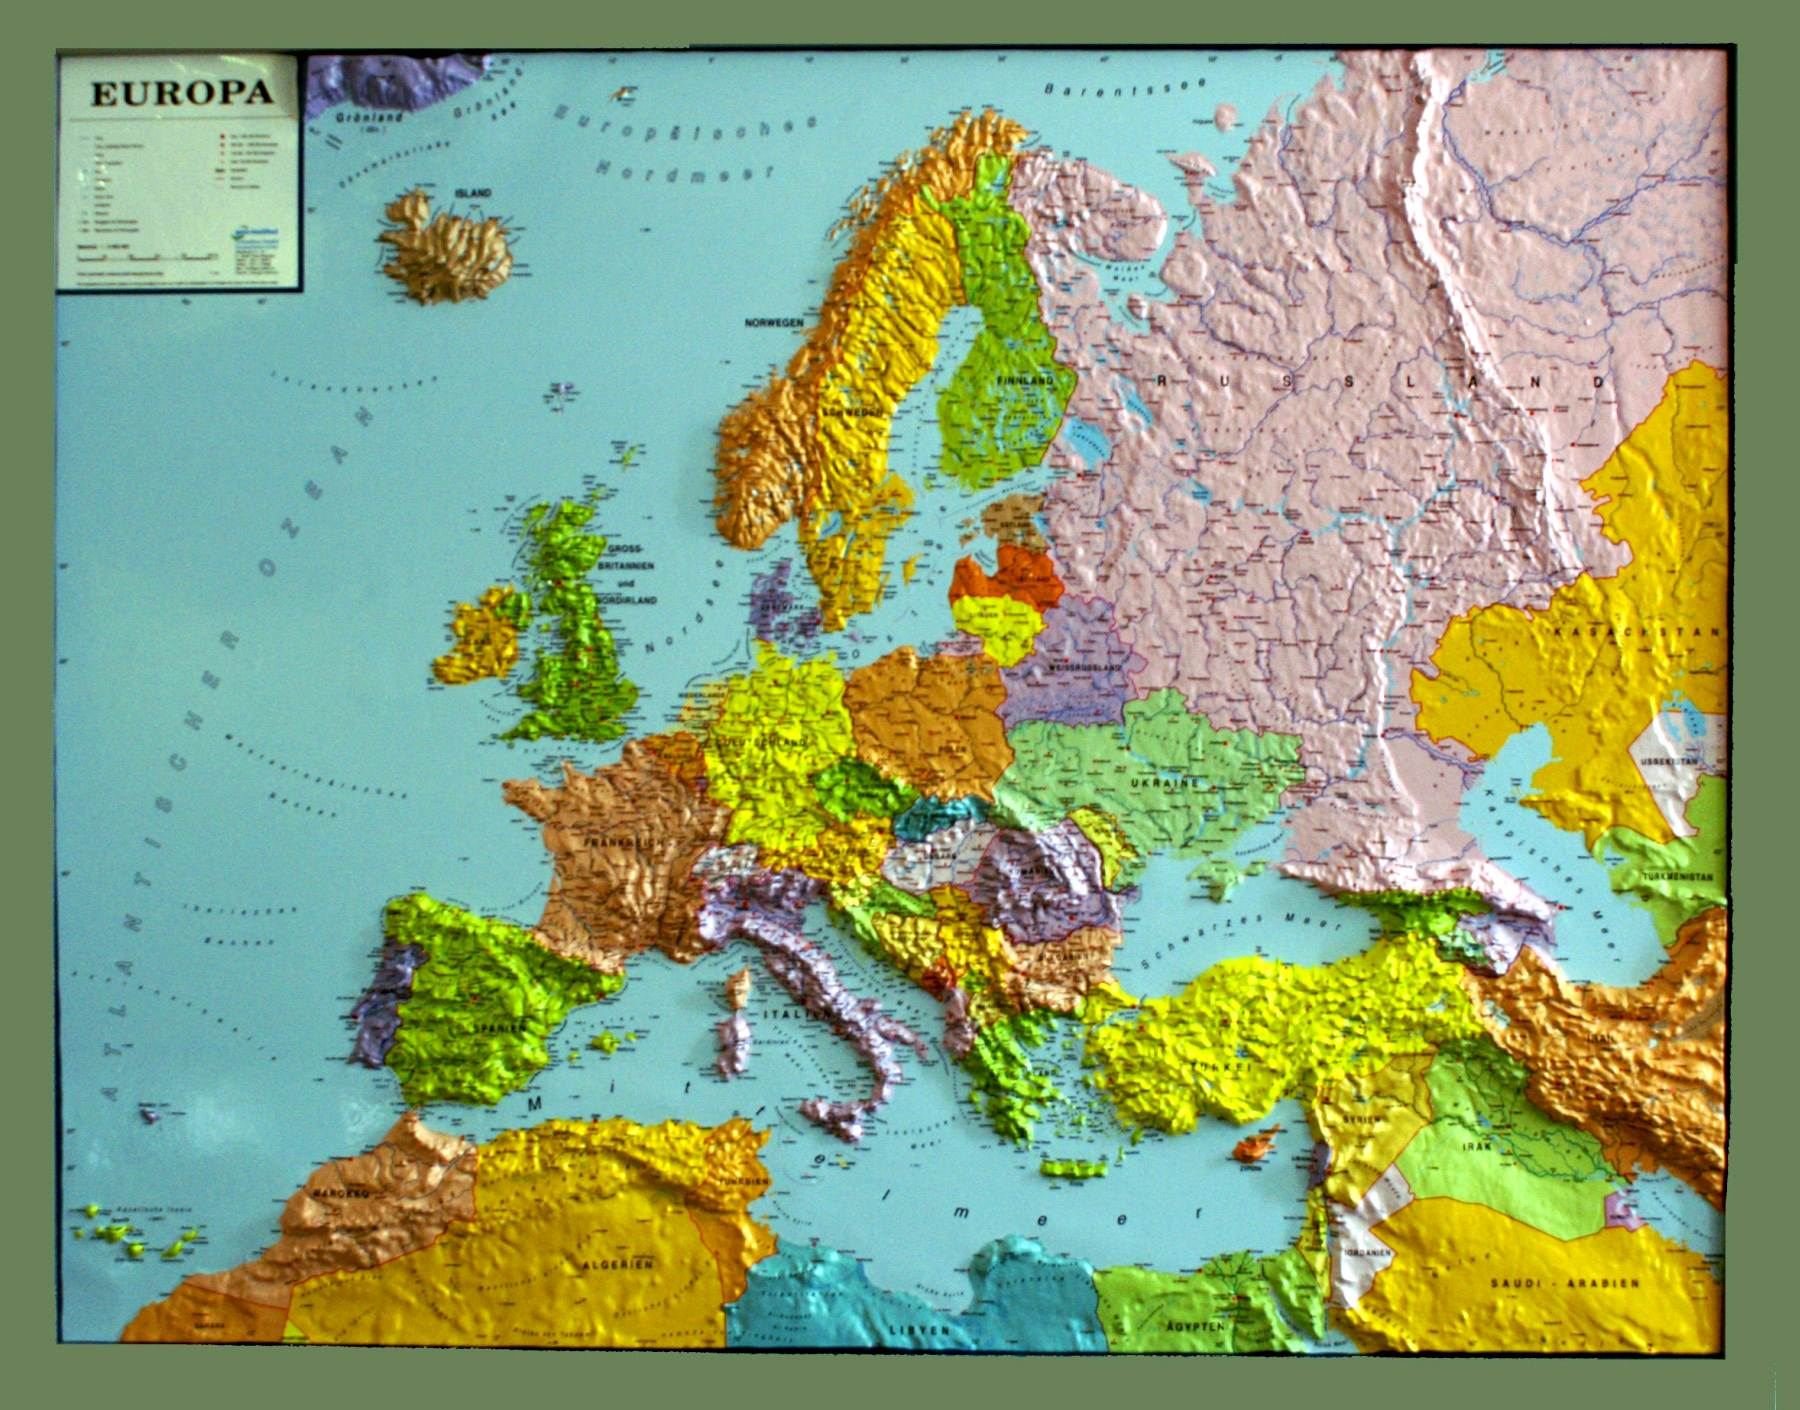 Map Of Europe With Scale.Relief Map Of Europe Silver Line Politically As 3d Map